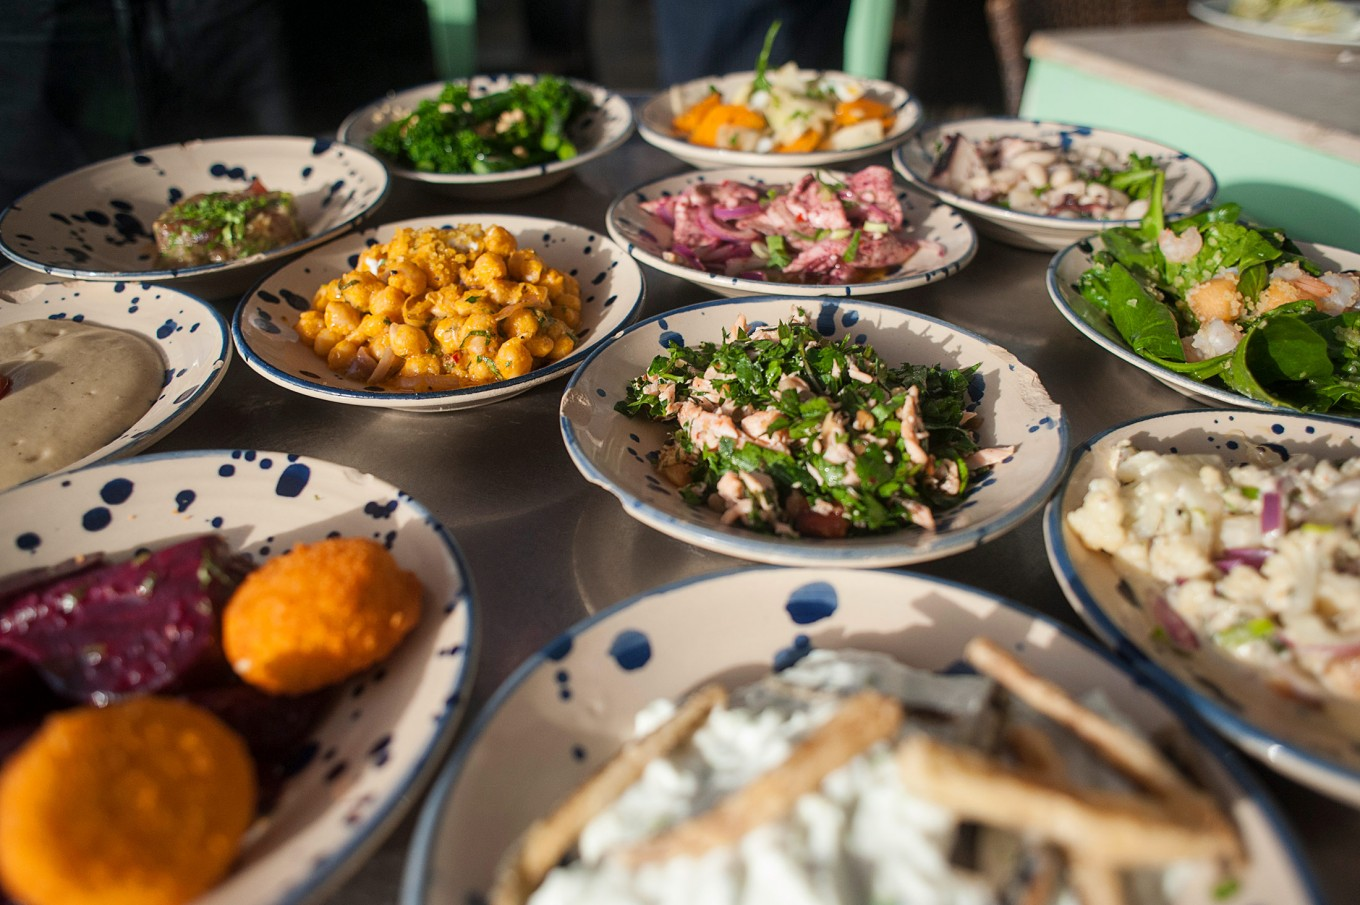 An Ottolenghi guide to eating in Israel, the new food hotspot